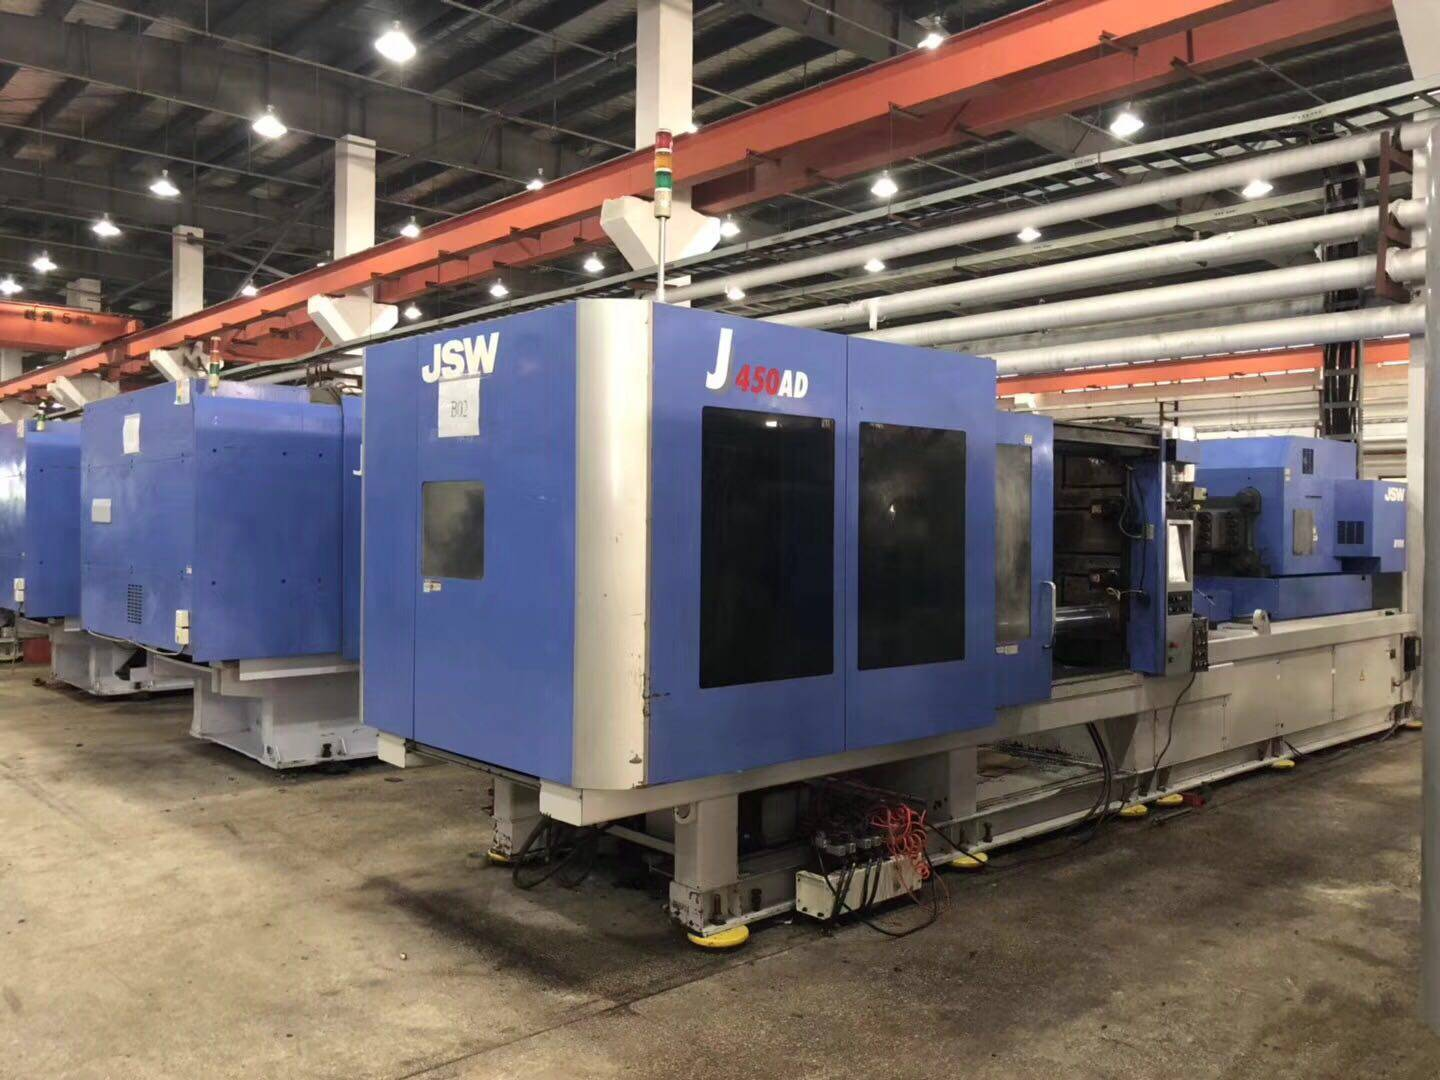 JSW450t (J450AD) all-electric used Injection Molding Machines Featured Image